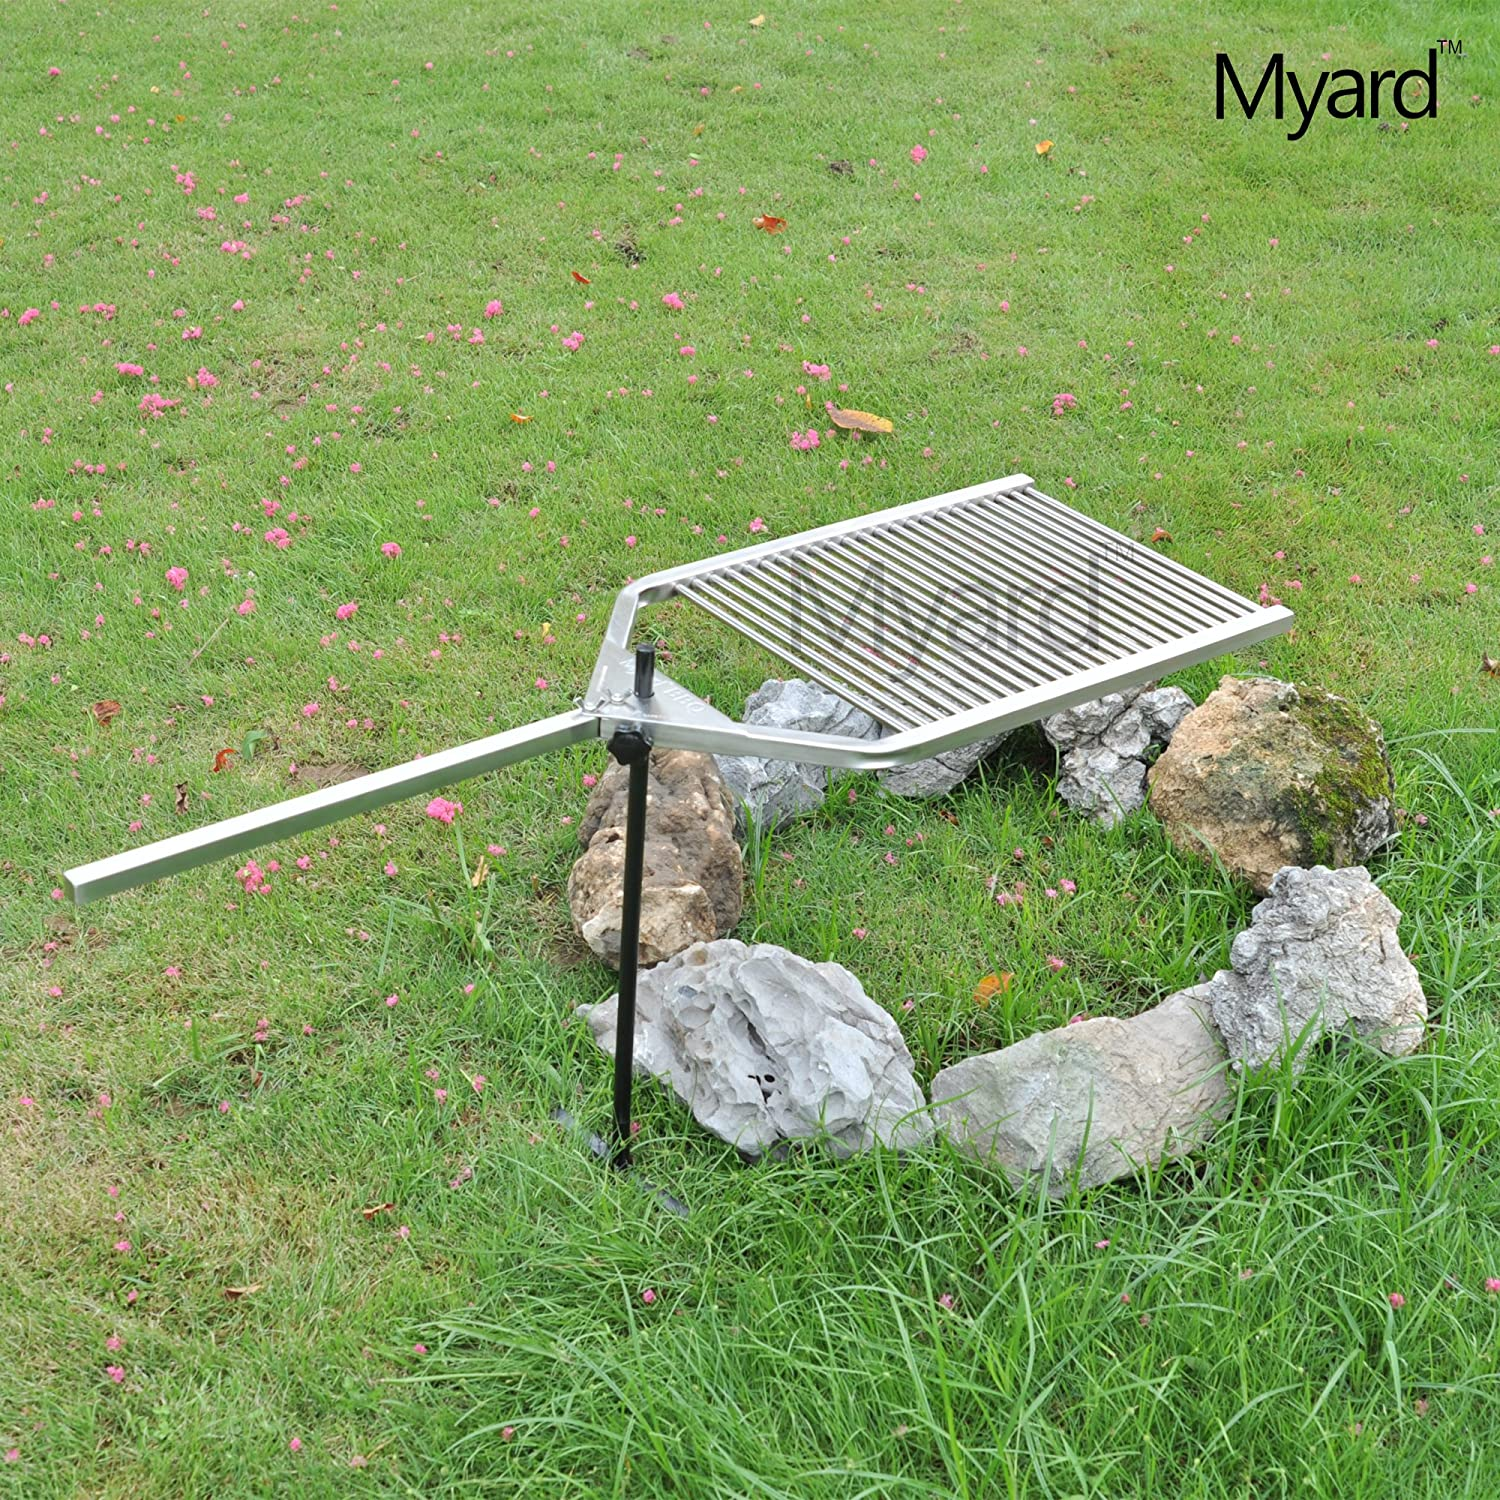 myard stainless steel 304 portable open fire pit campfire bbq swivel